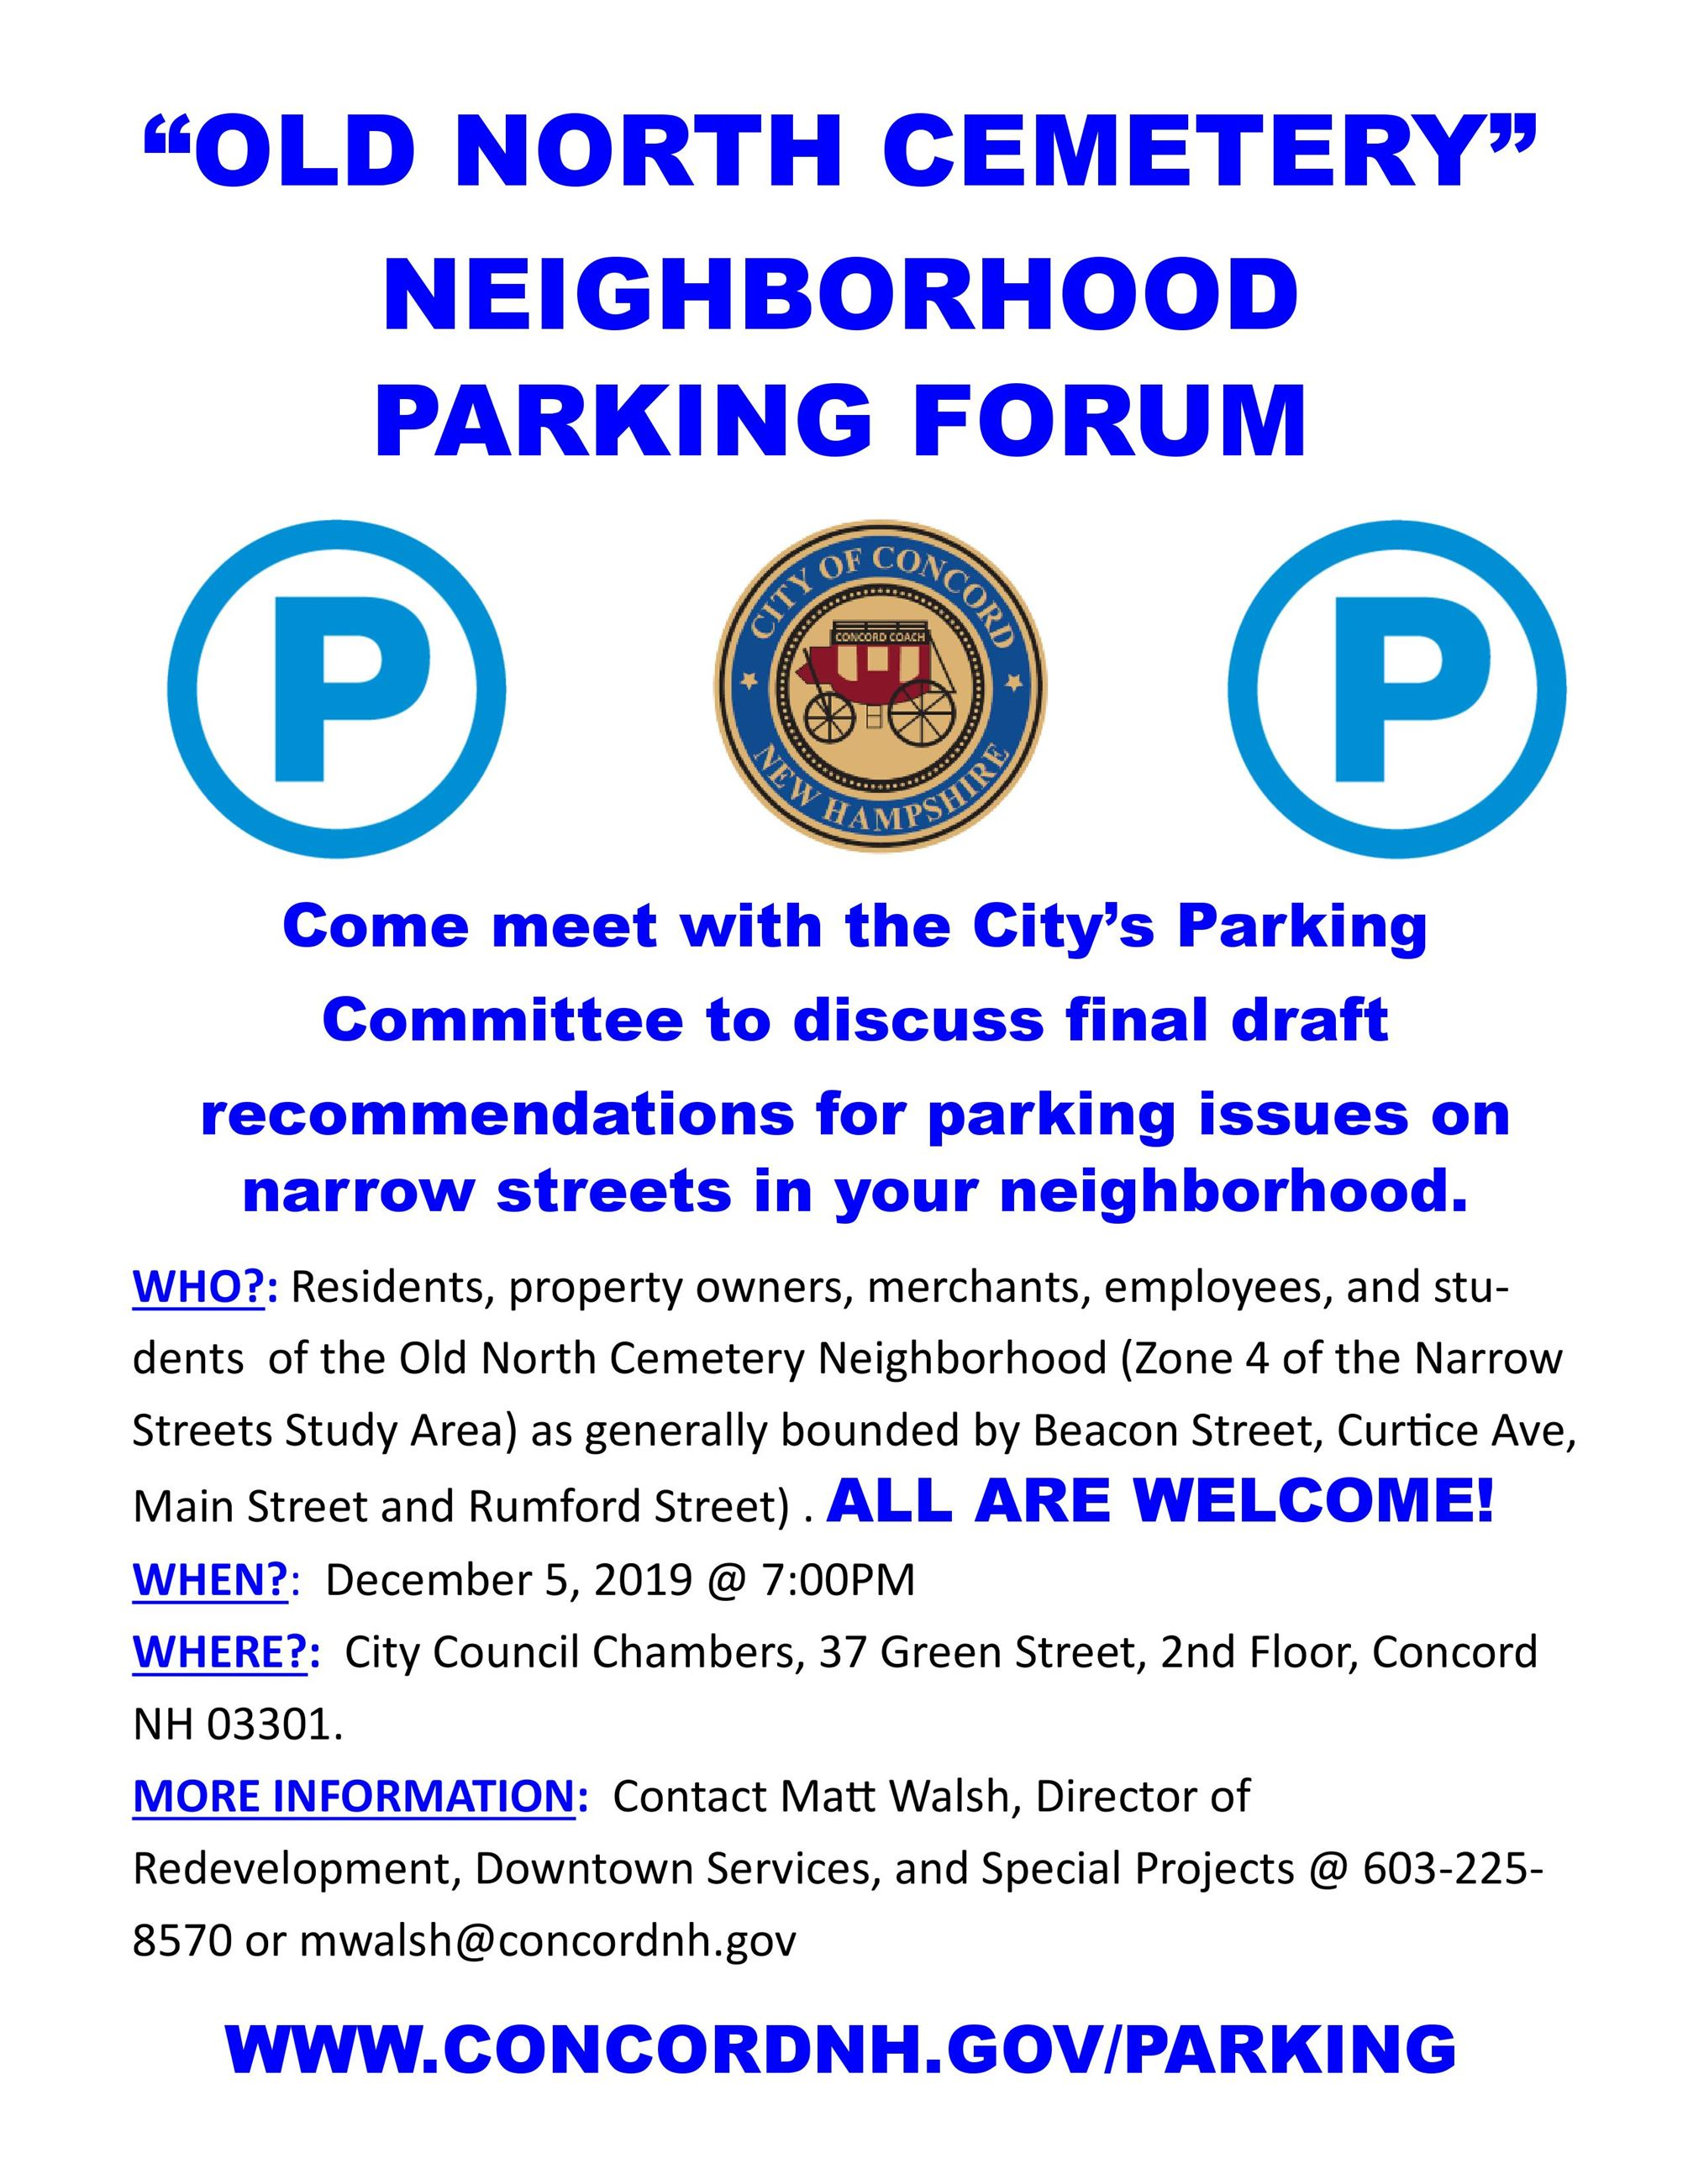 Old North Cemetery Neighborhood Parking Forum 12052019